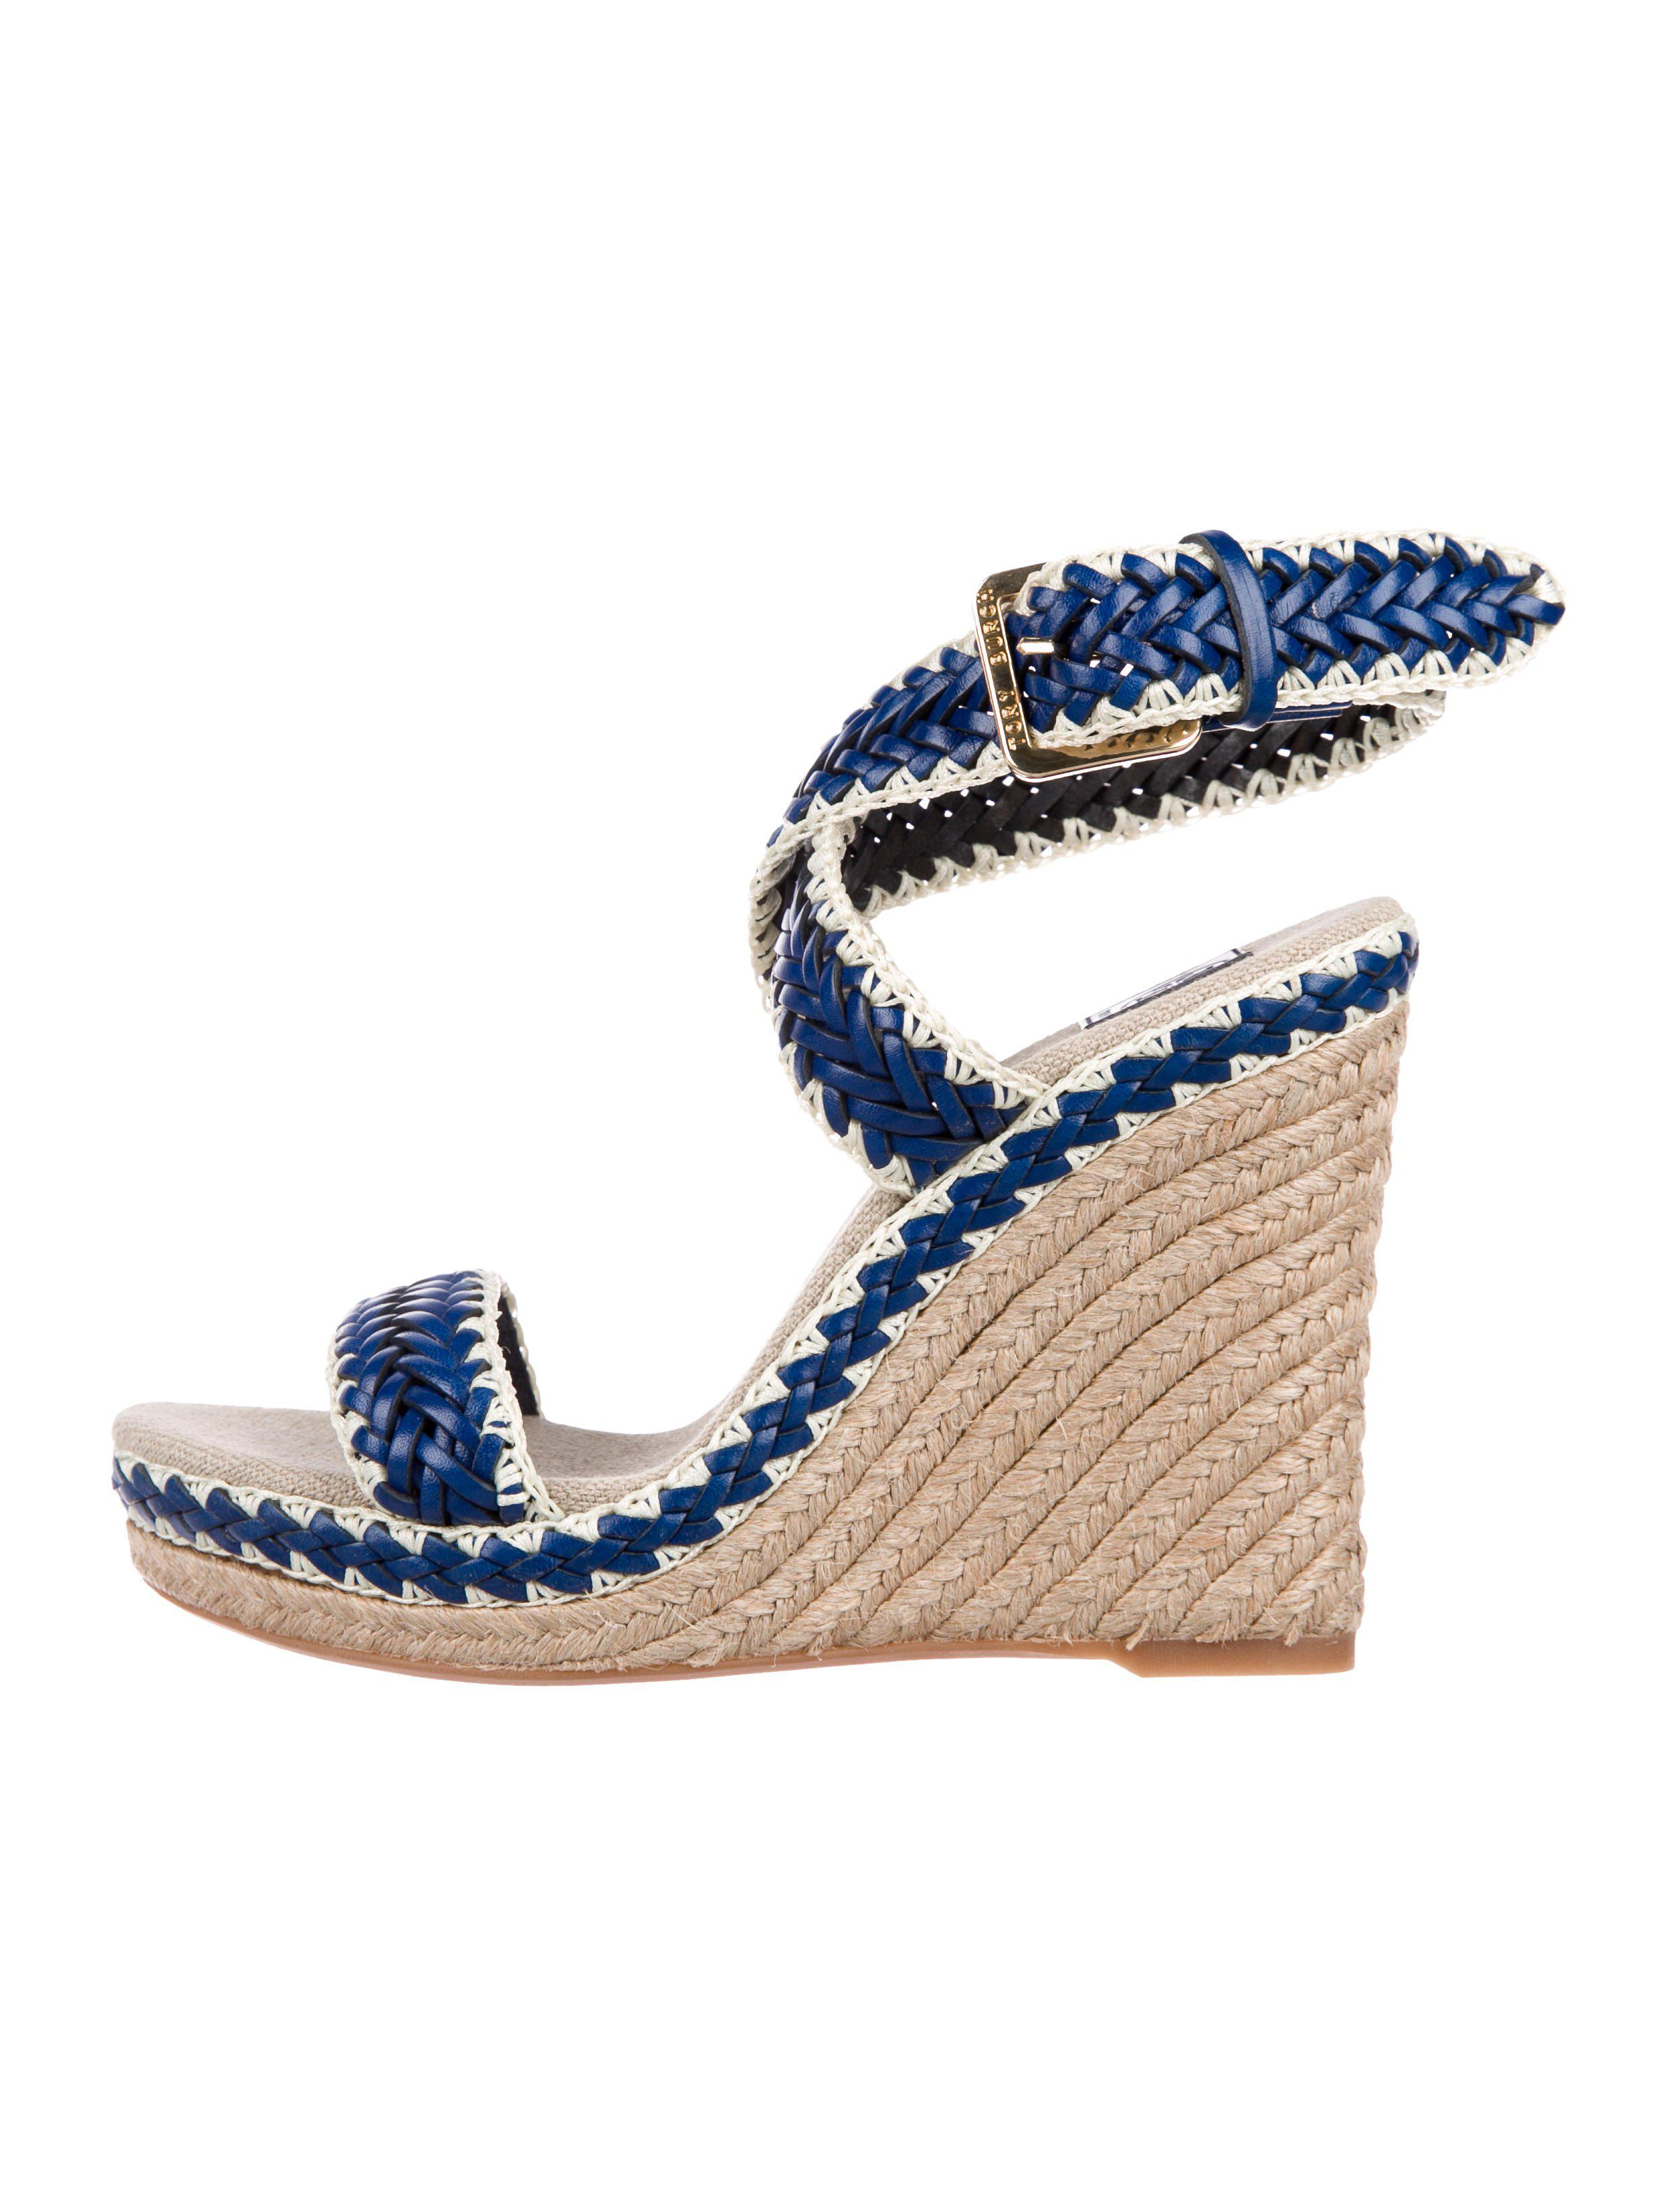 caa3476d2fe Lyst - Tory Burch Leather Espadrille Wedges Blue in Metallic